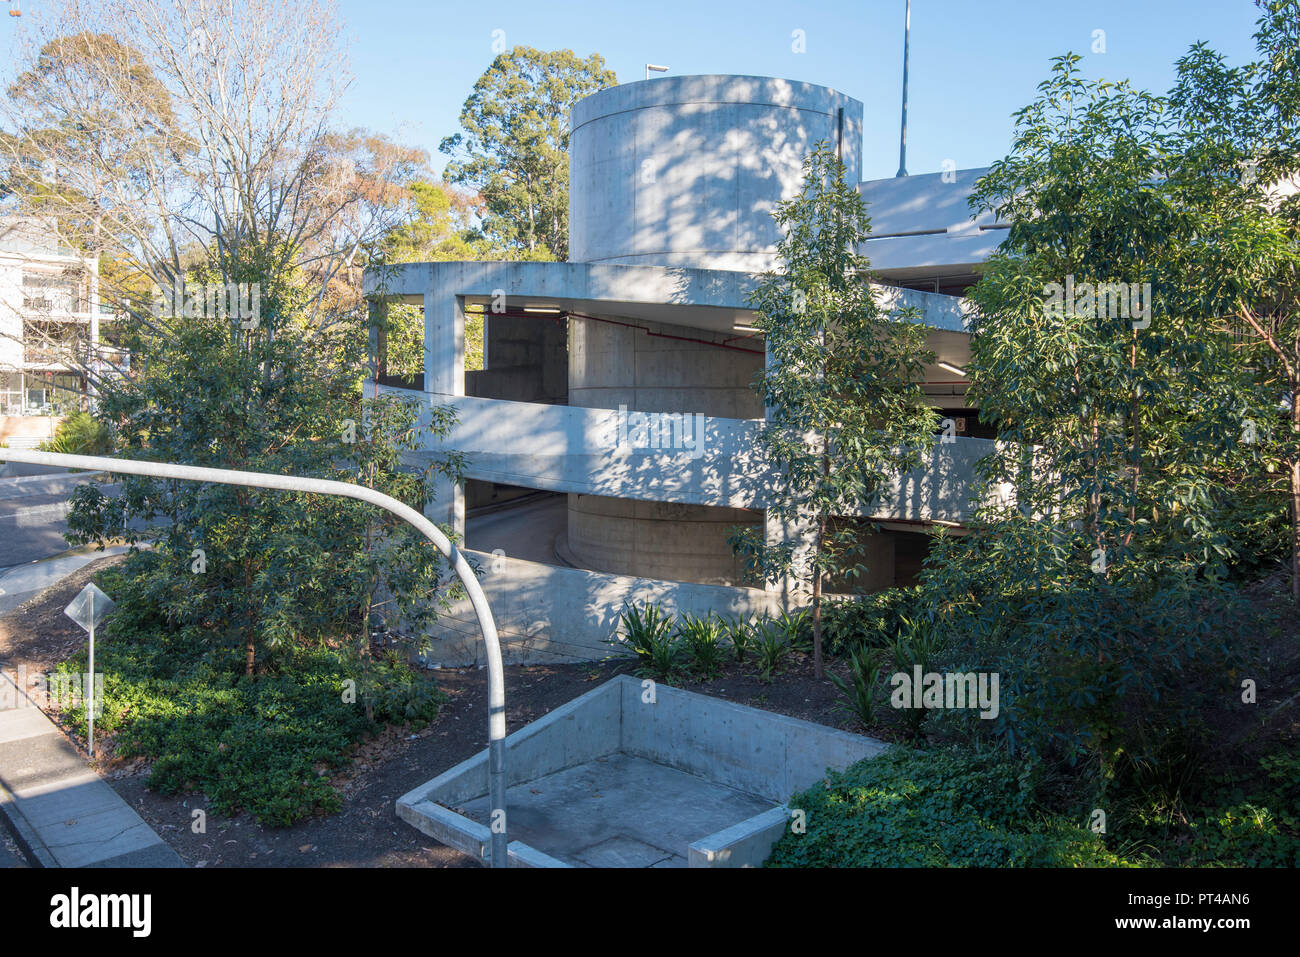 The circular end ramp joining different levels of a new multistory or multistorey carpark at Gordon railway station on Sydney Australia's north shore - Stock Image